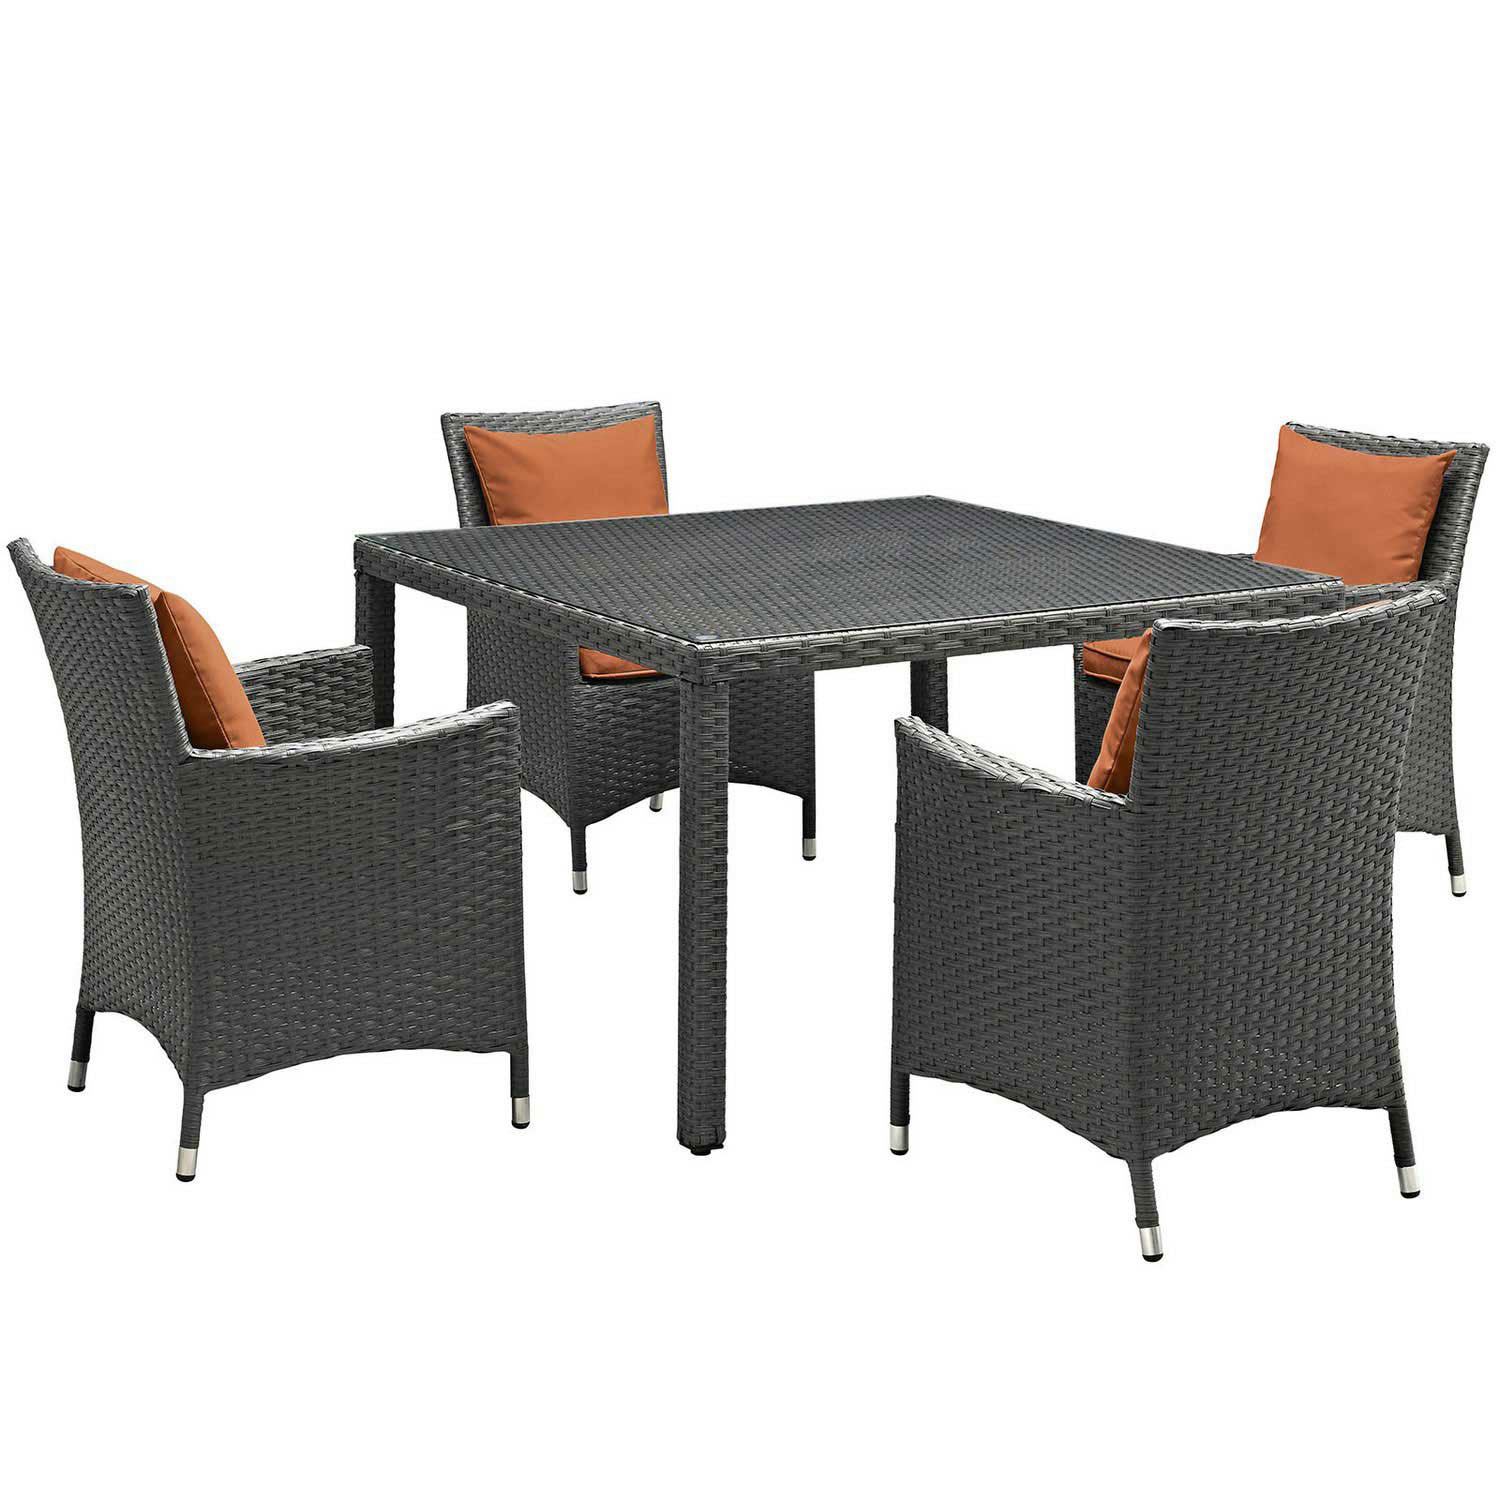 Modway Sojourn 5 Piece Outdoor Patio Sunbrella Dining Set - Canvas Tuscan